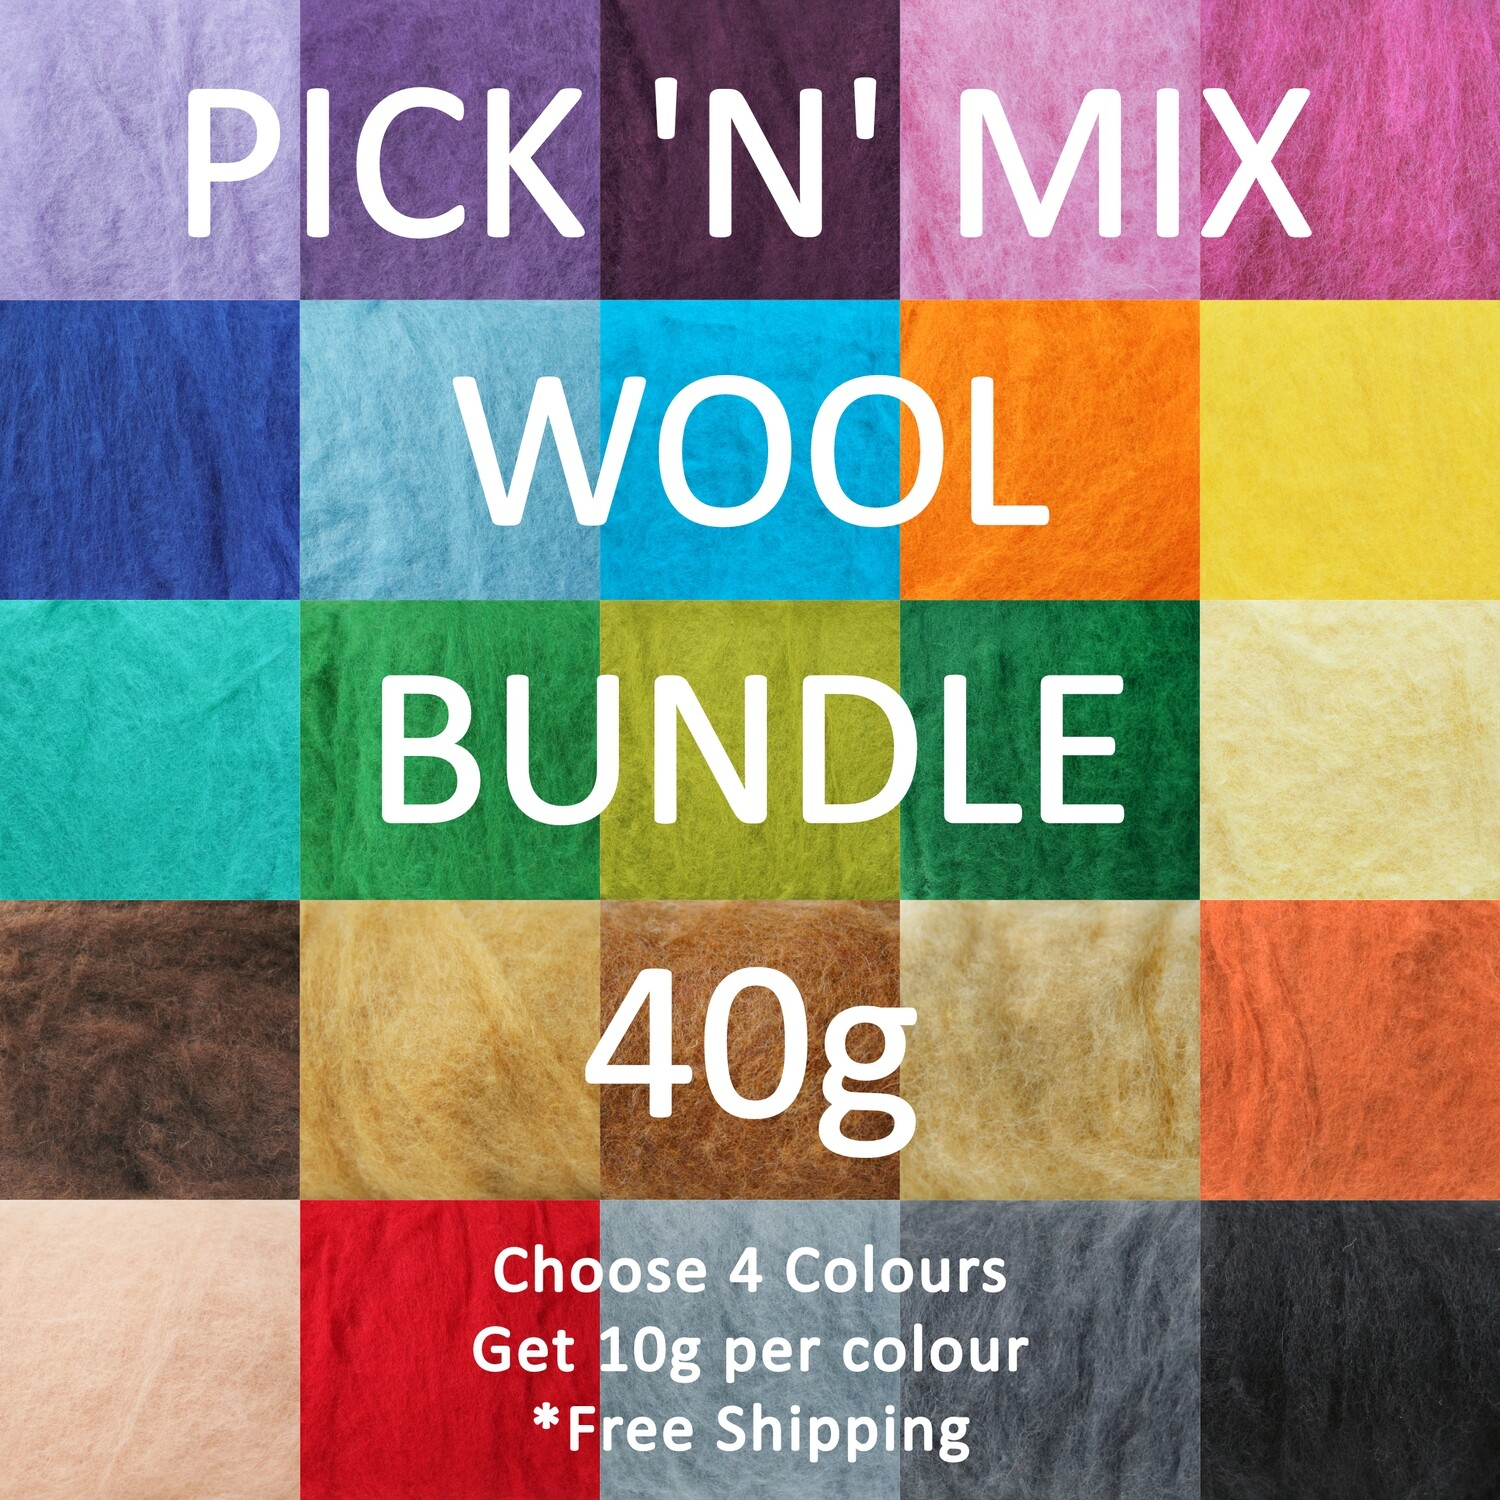 PICK 'N' MIX Wool Bundle 40g